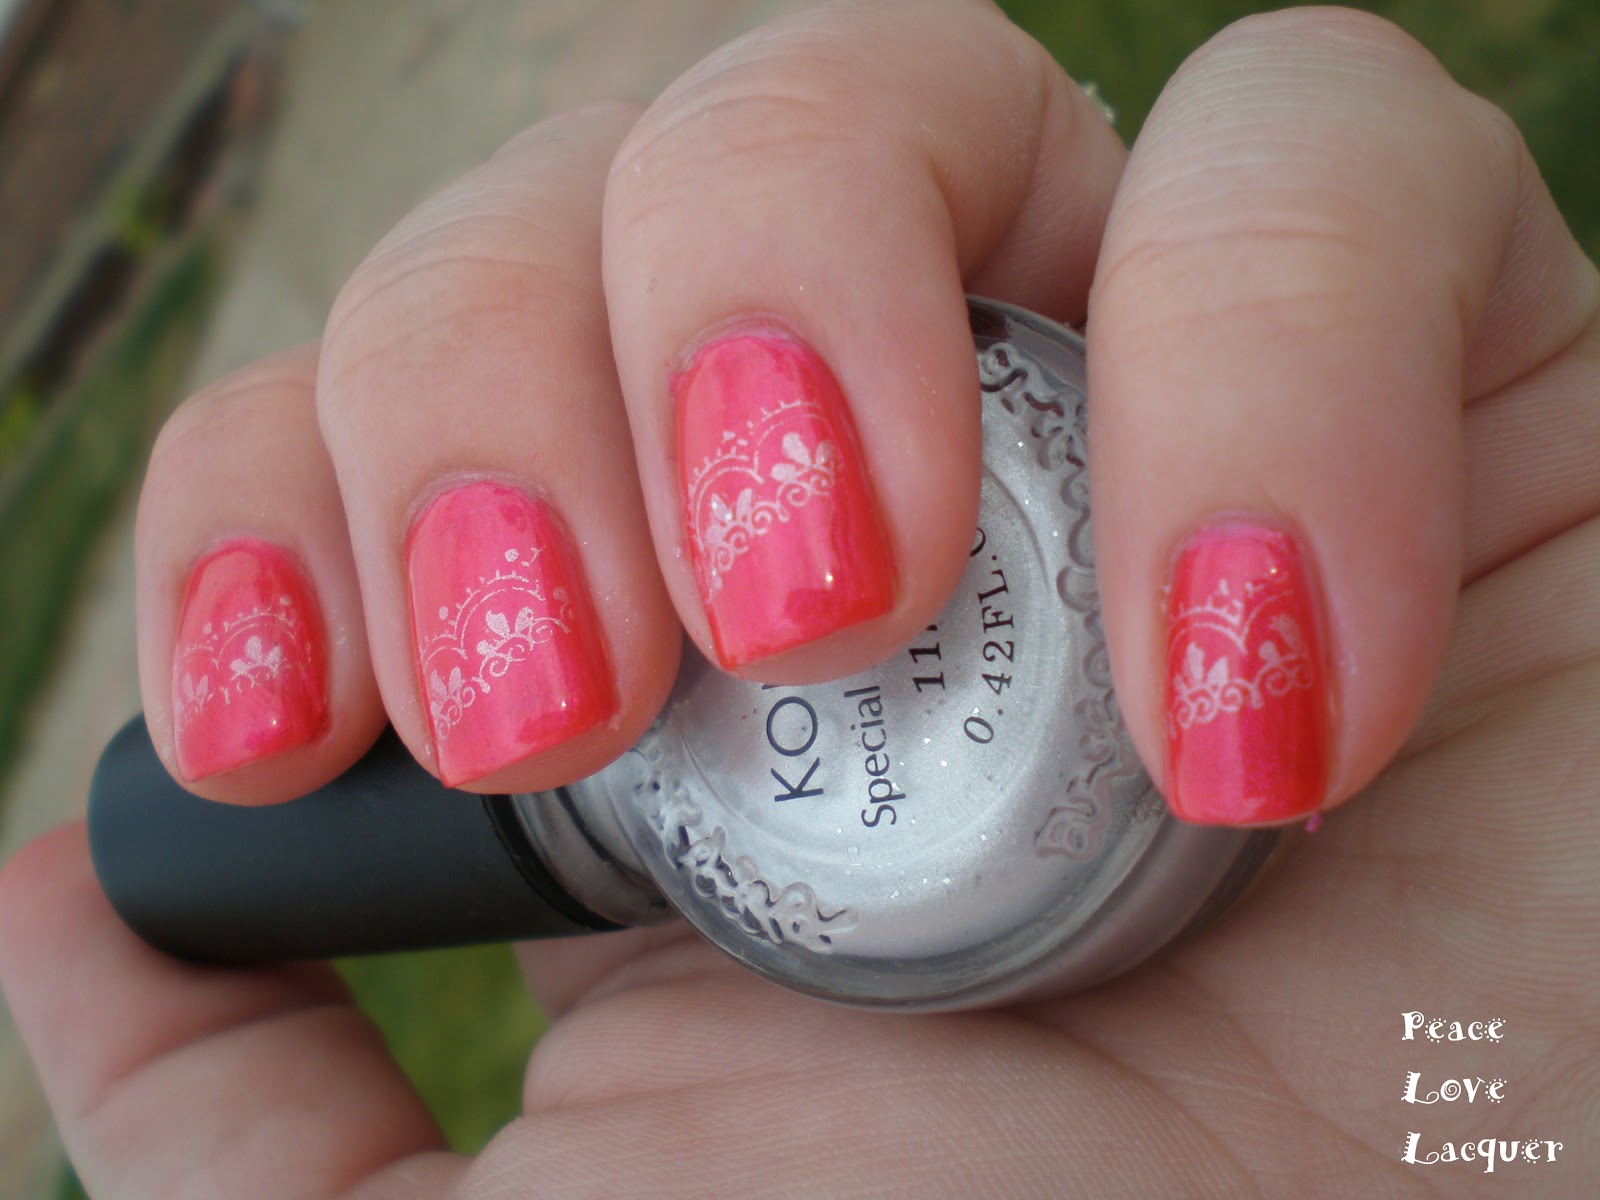 Peace Love Lacquer: 31 Day Nail Art Challenge: Day 15 - Delicate Print